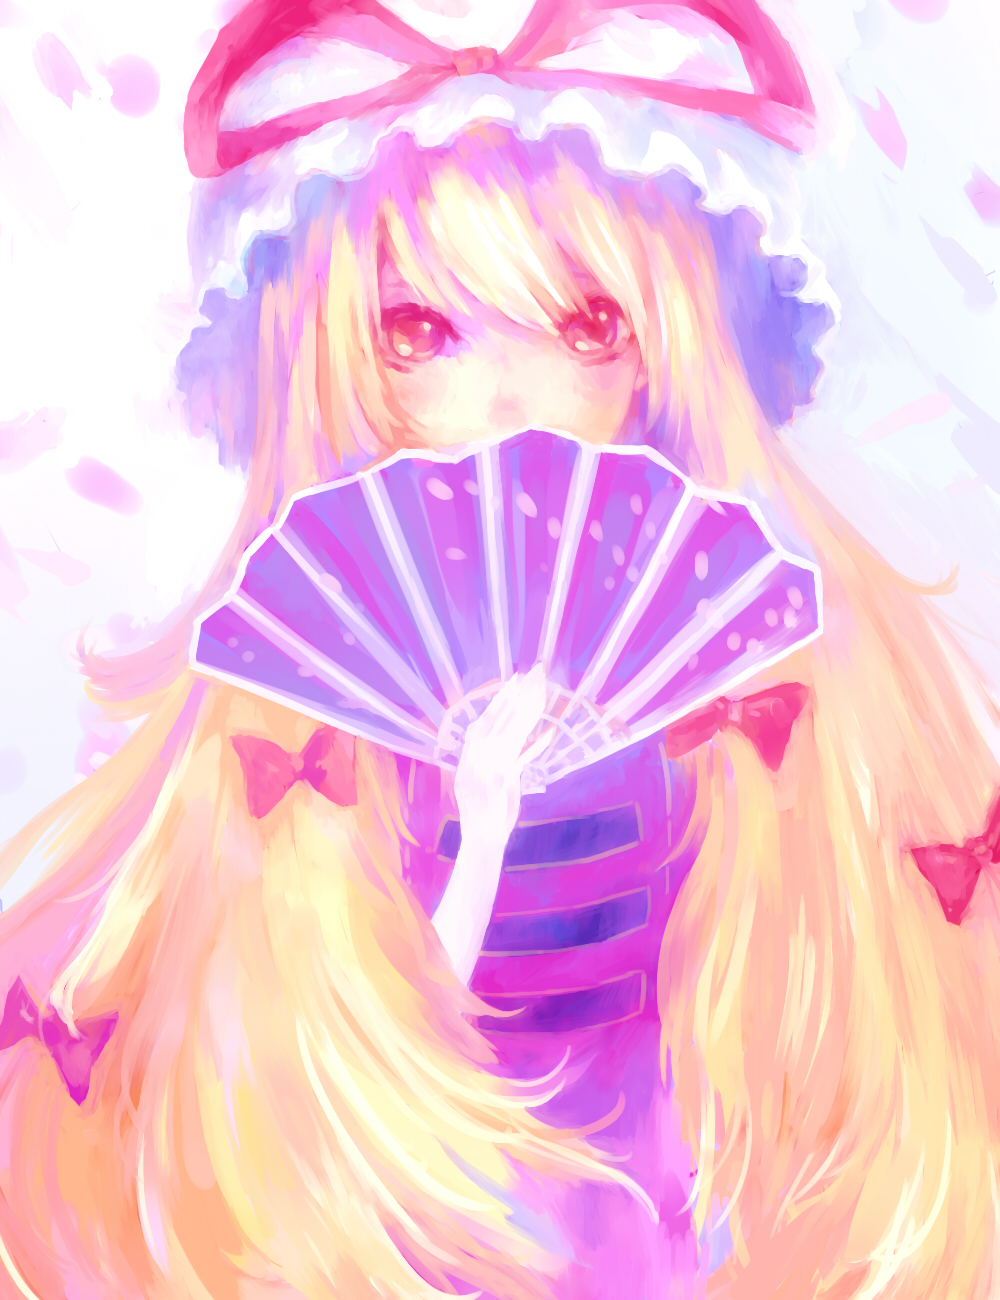 132_(bb32768) 1girl big_hair blonde_hair bow covering_mouth elbow_gloves fan floral_print folding_fan gloves hair_bow hat hat_ribbon highres long_hair looking_at_viewer mob_cap petals pink_eyes ribbon simple_background solo tabard touhou very_long_hair white_background white_gloves yakumo_yukari